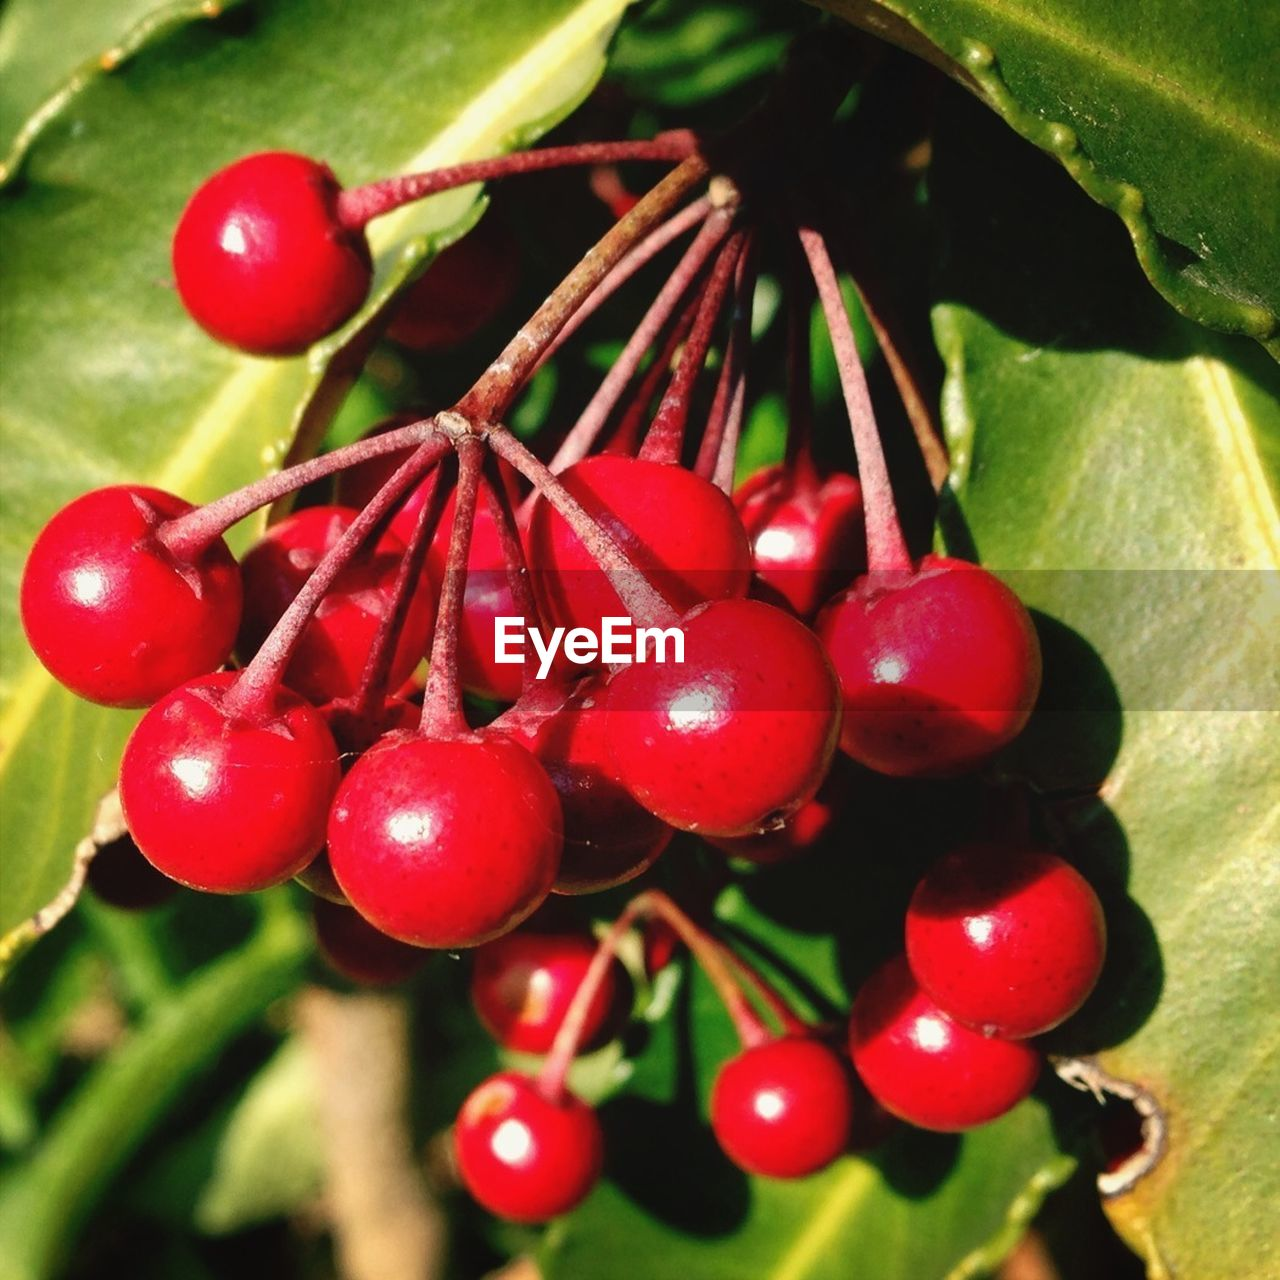 red, fruit, food and drink, growth, food, nature, tree, focus on foreground, close-up, no people, healthy eating, day, leaf, freshness, outdoors, branch, water, beauty in nature